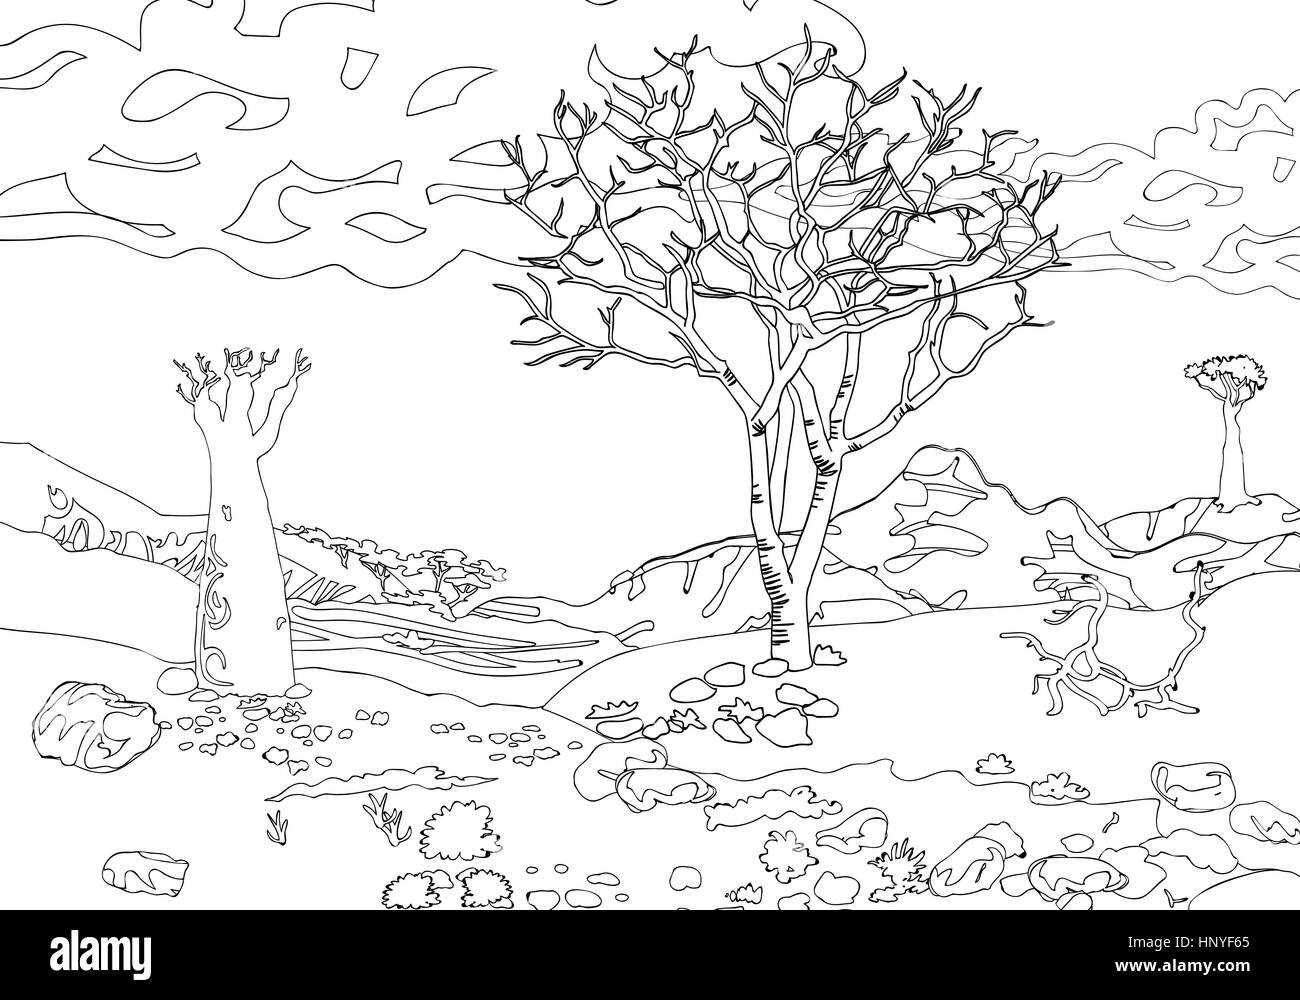 Coloring Book For Adults Black And White Vector Illustration